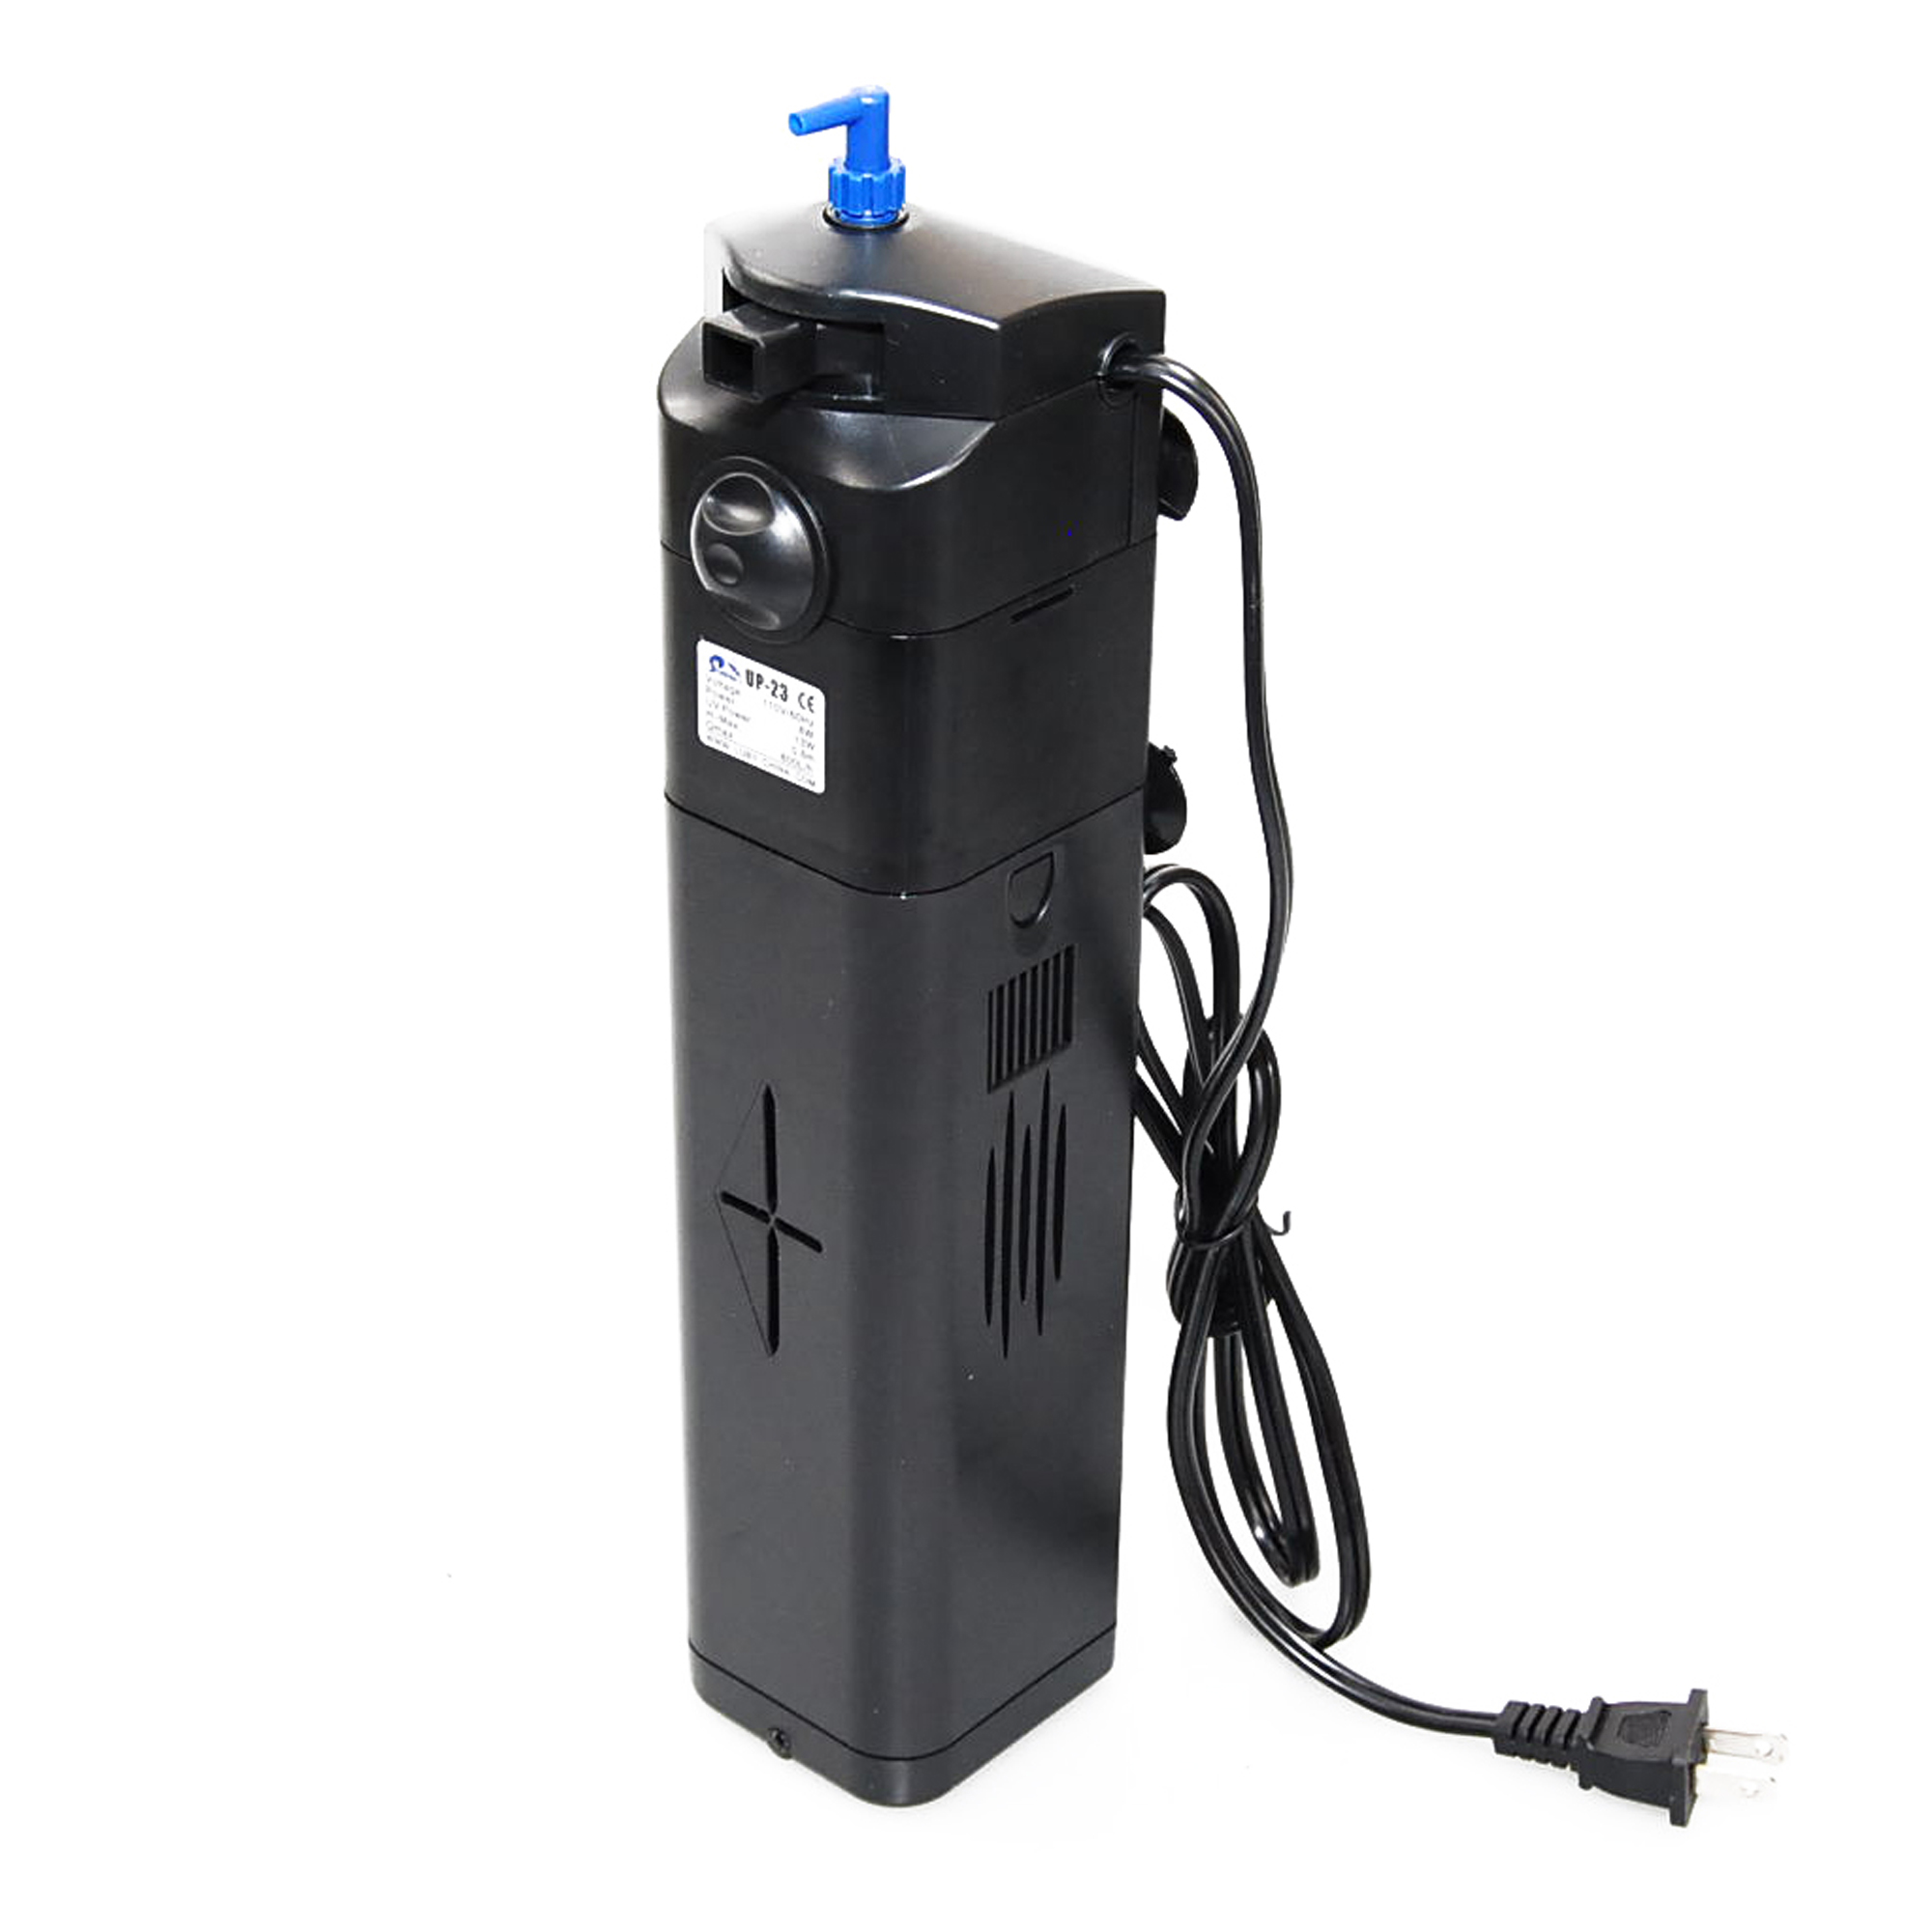 13w aquarium uv sterilizer submersible pump filter 150 gal for Uv filter for fish tank